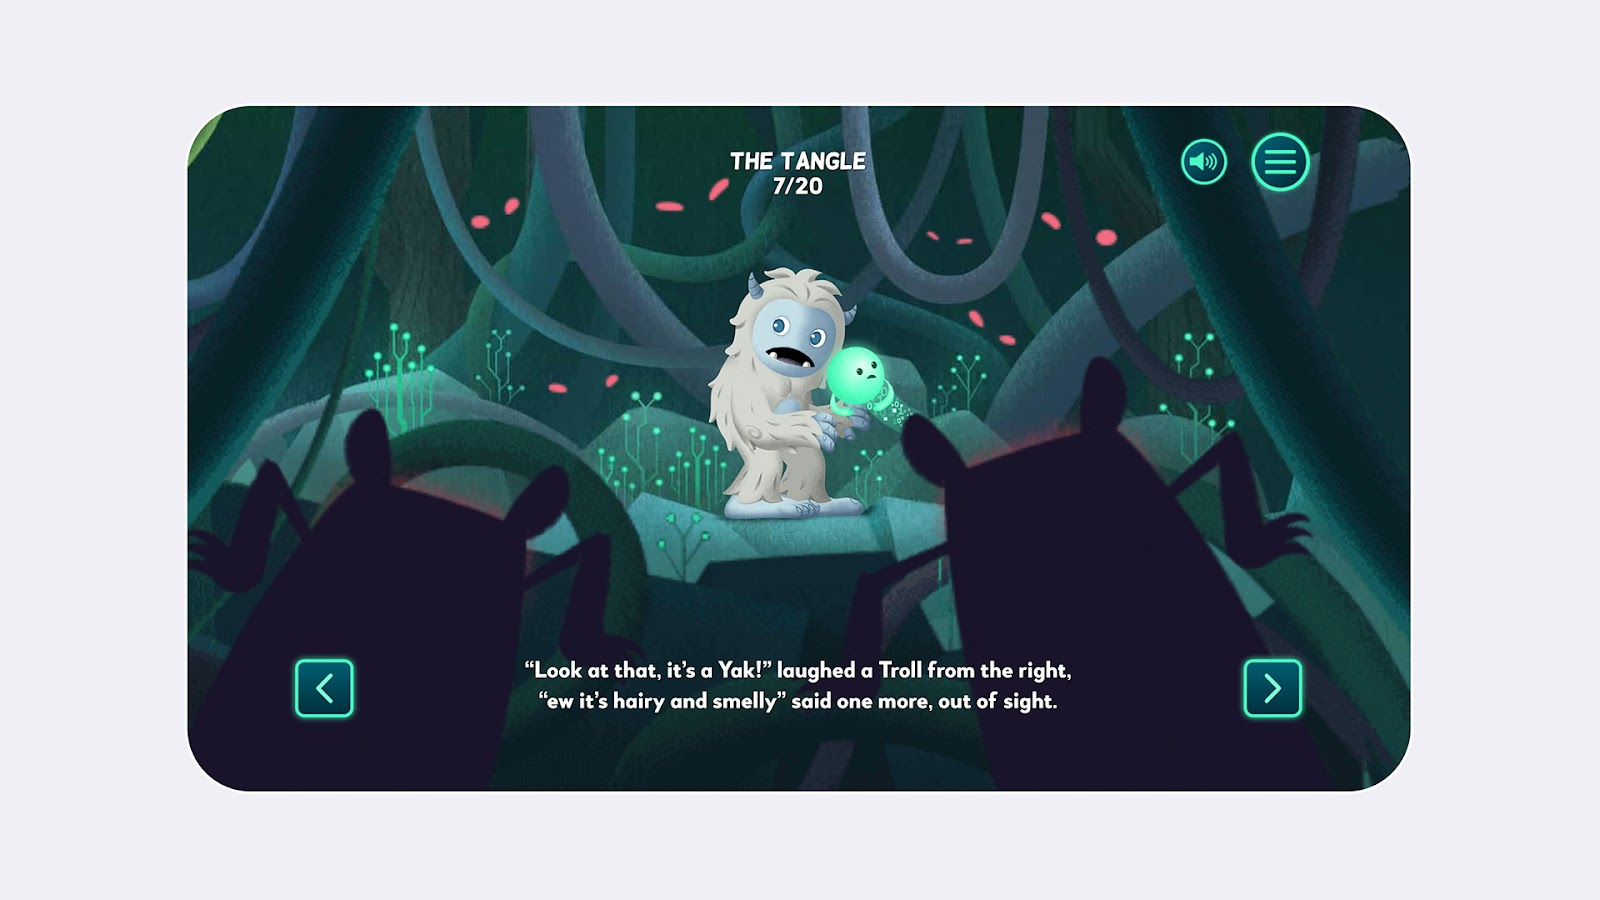 Motion Sickness delivers next chapter in DIA's online safety campaign with 'The Inter-Yeti'